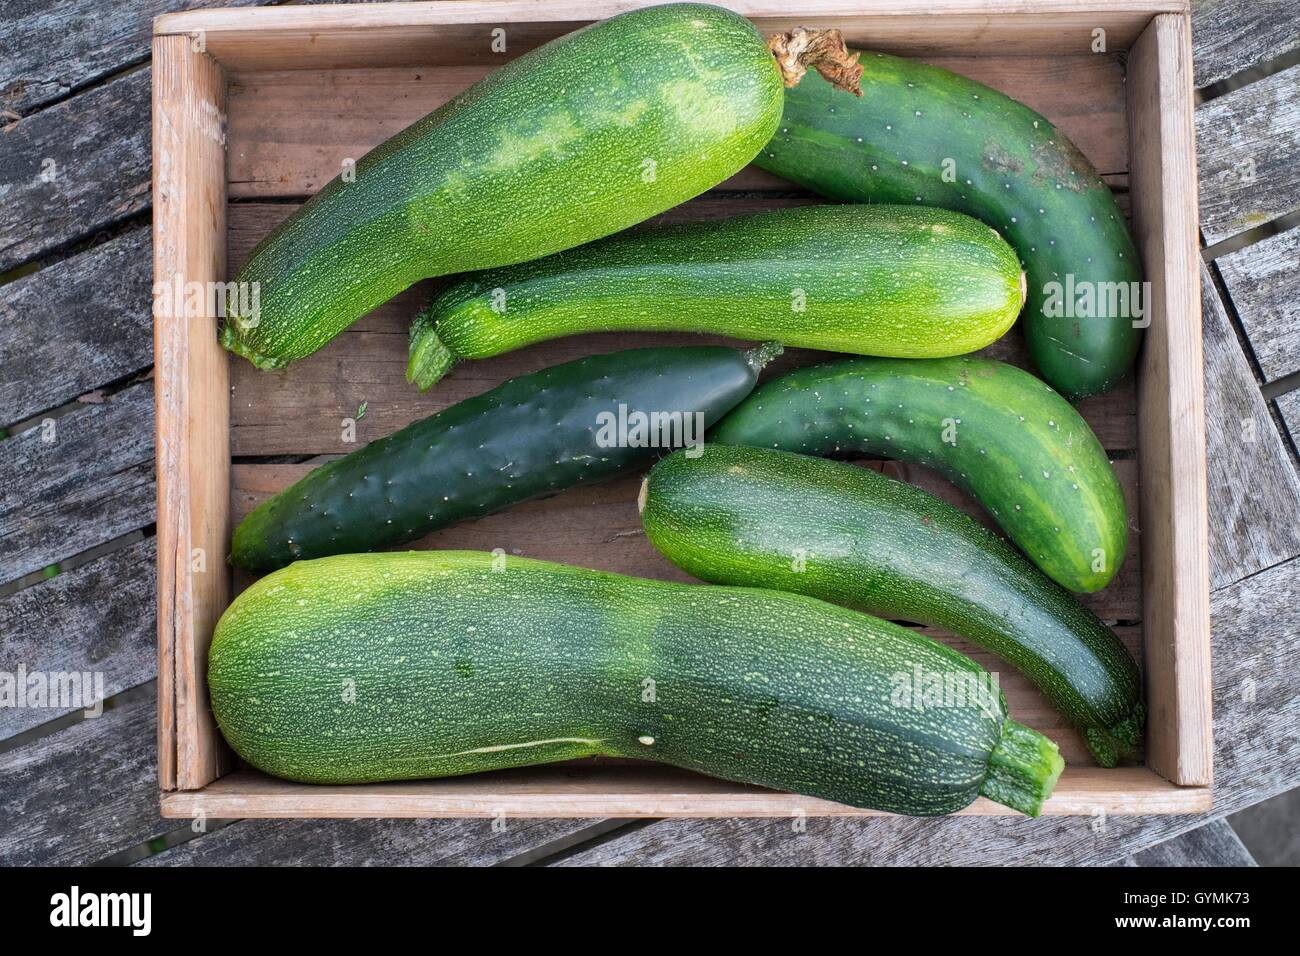 Wooden Box of home grown outdoor cucumbers and courgettes. - Stock Image